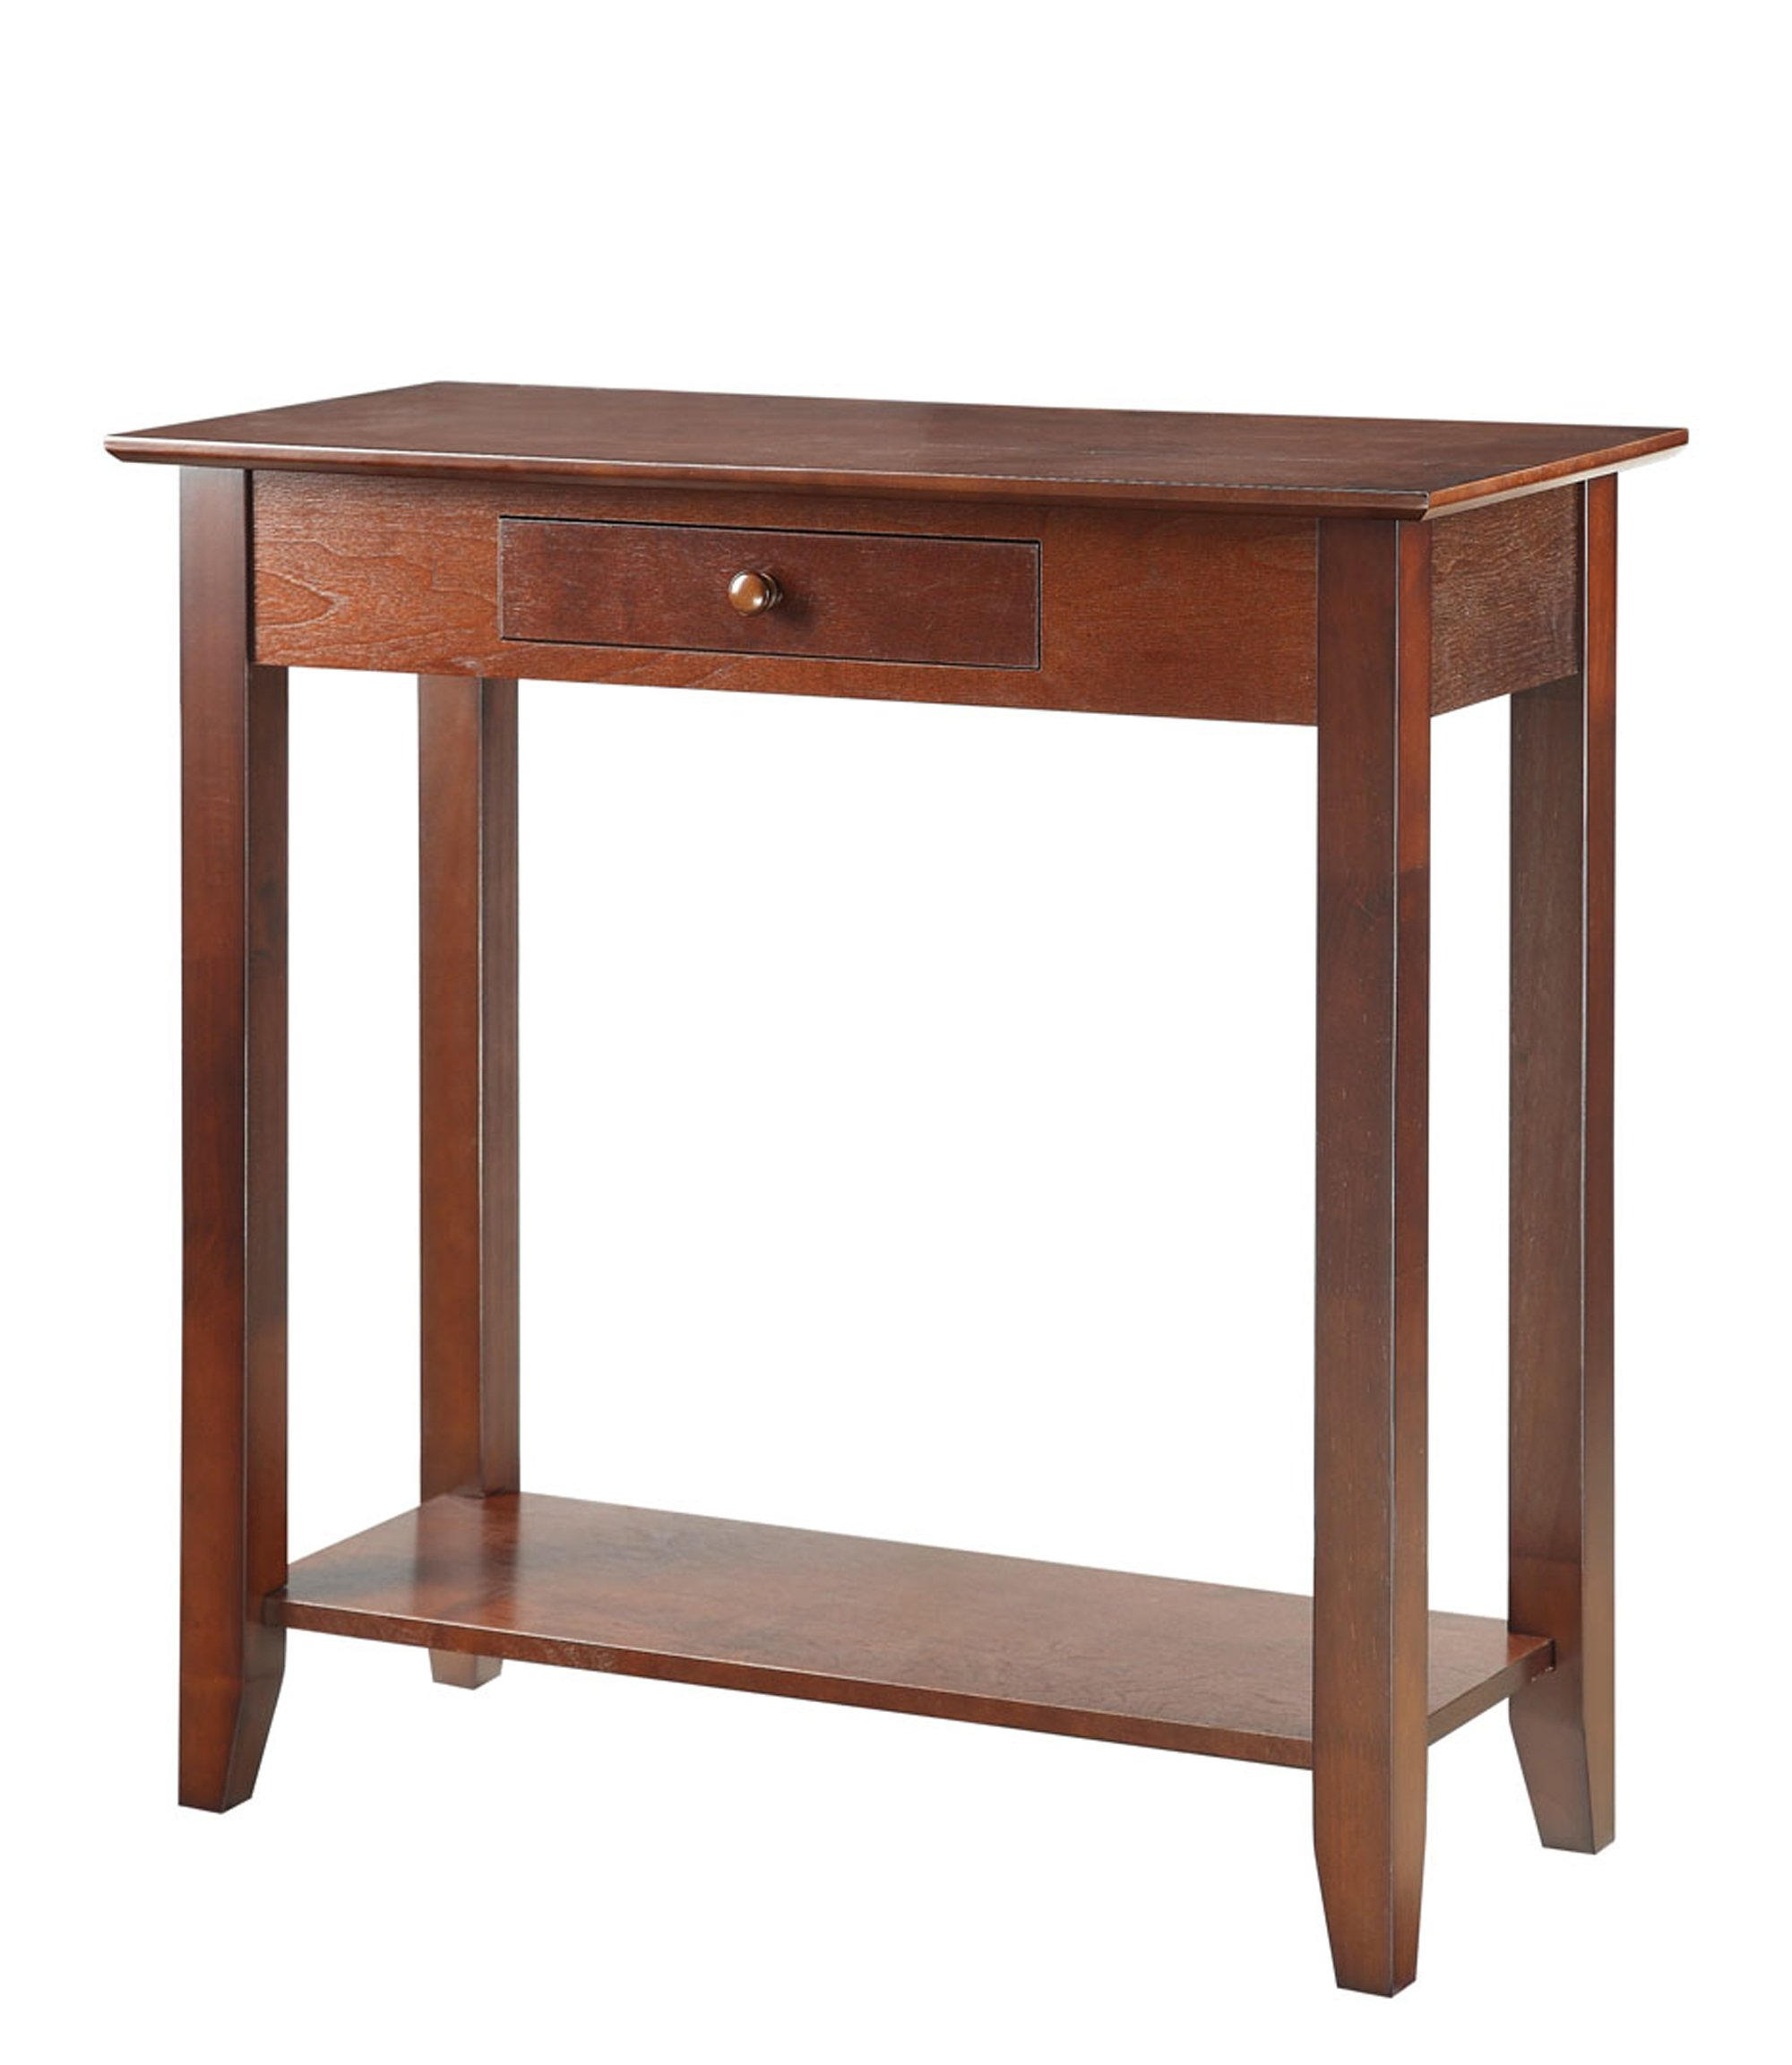 Convenience Concepts American Heritage Hall Table with Drawer and Shelf, Espresso by Convenience Concepts